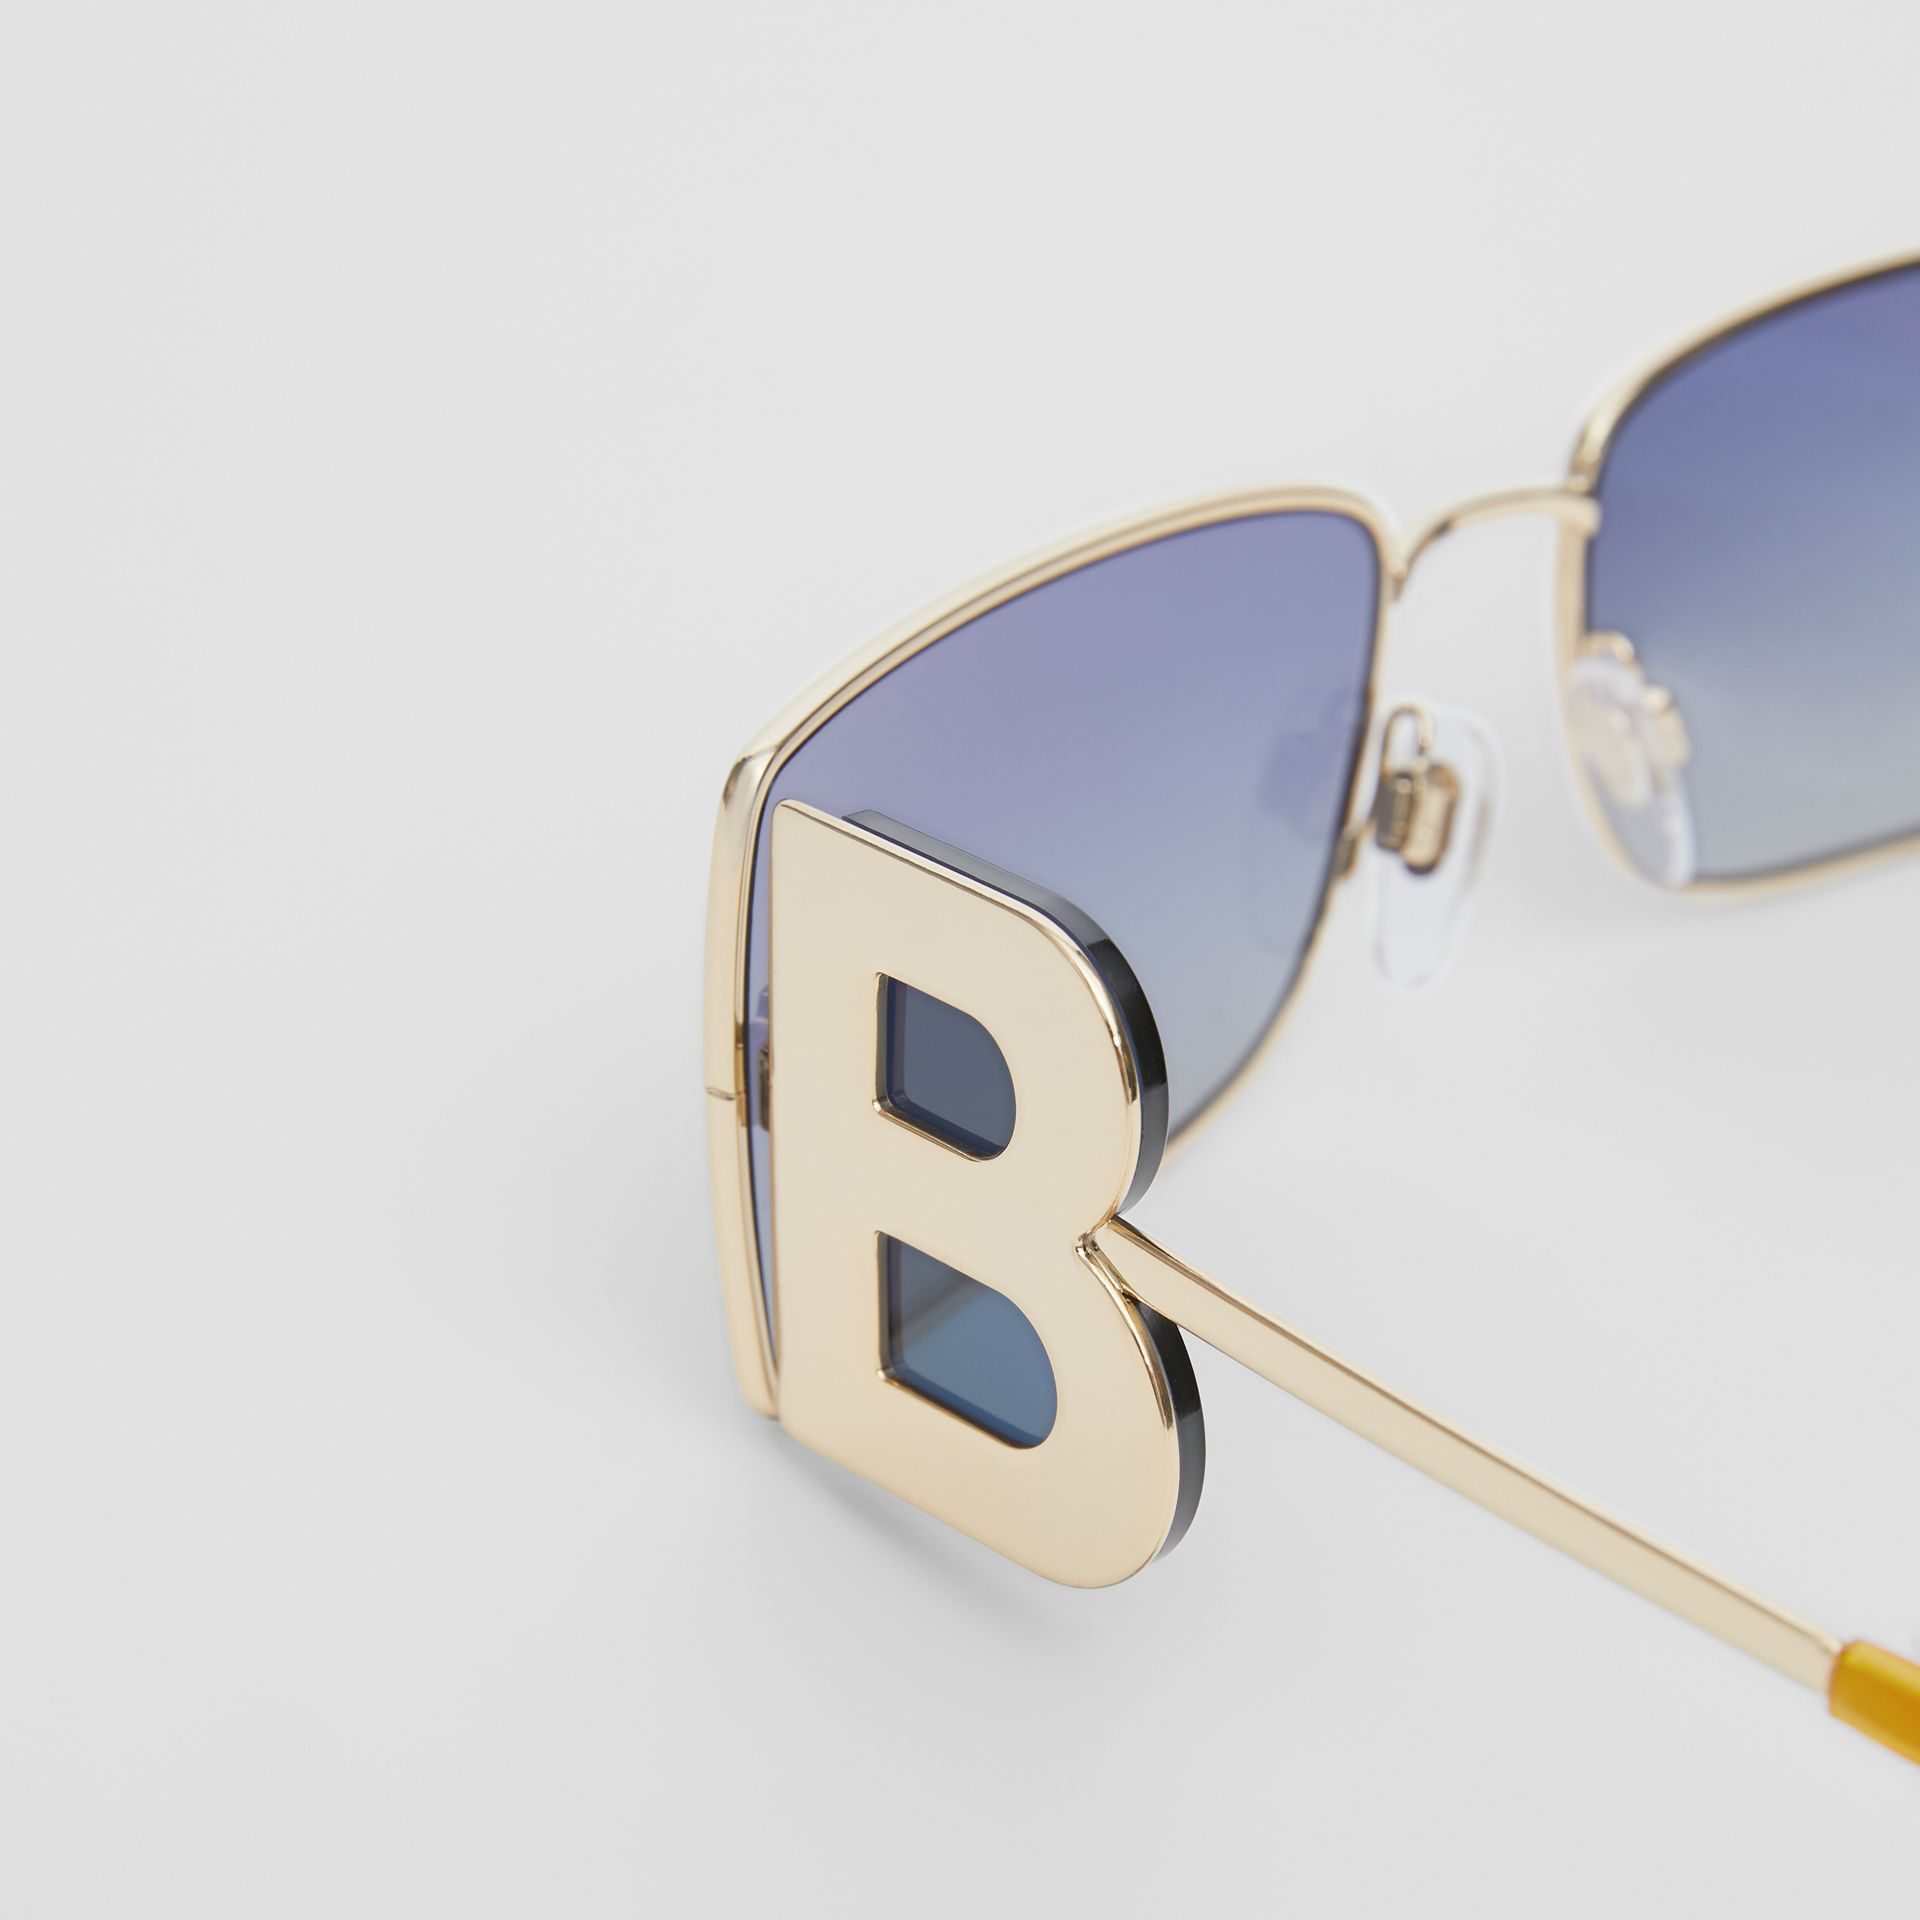 'B' Lens Detail Rectangular Frame Sunglasses in Tortoiseshell - Women | Burberry Hong Kong - gallery image 1